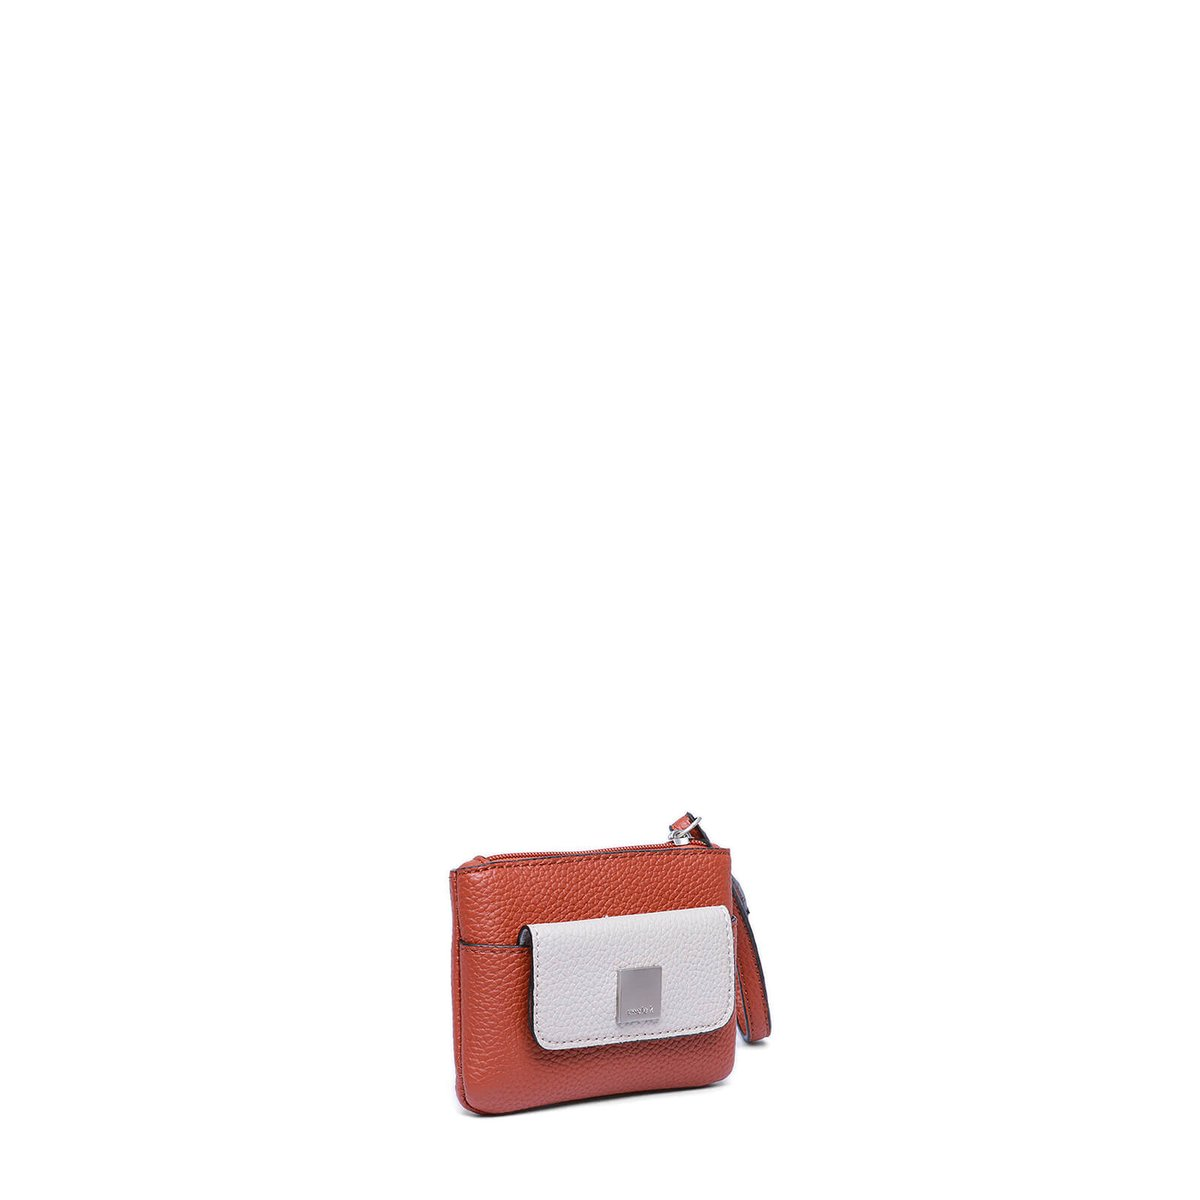 mini clutch 70179 pu